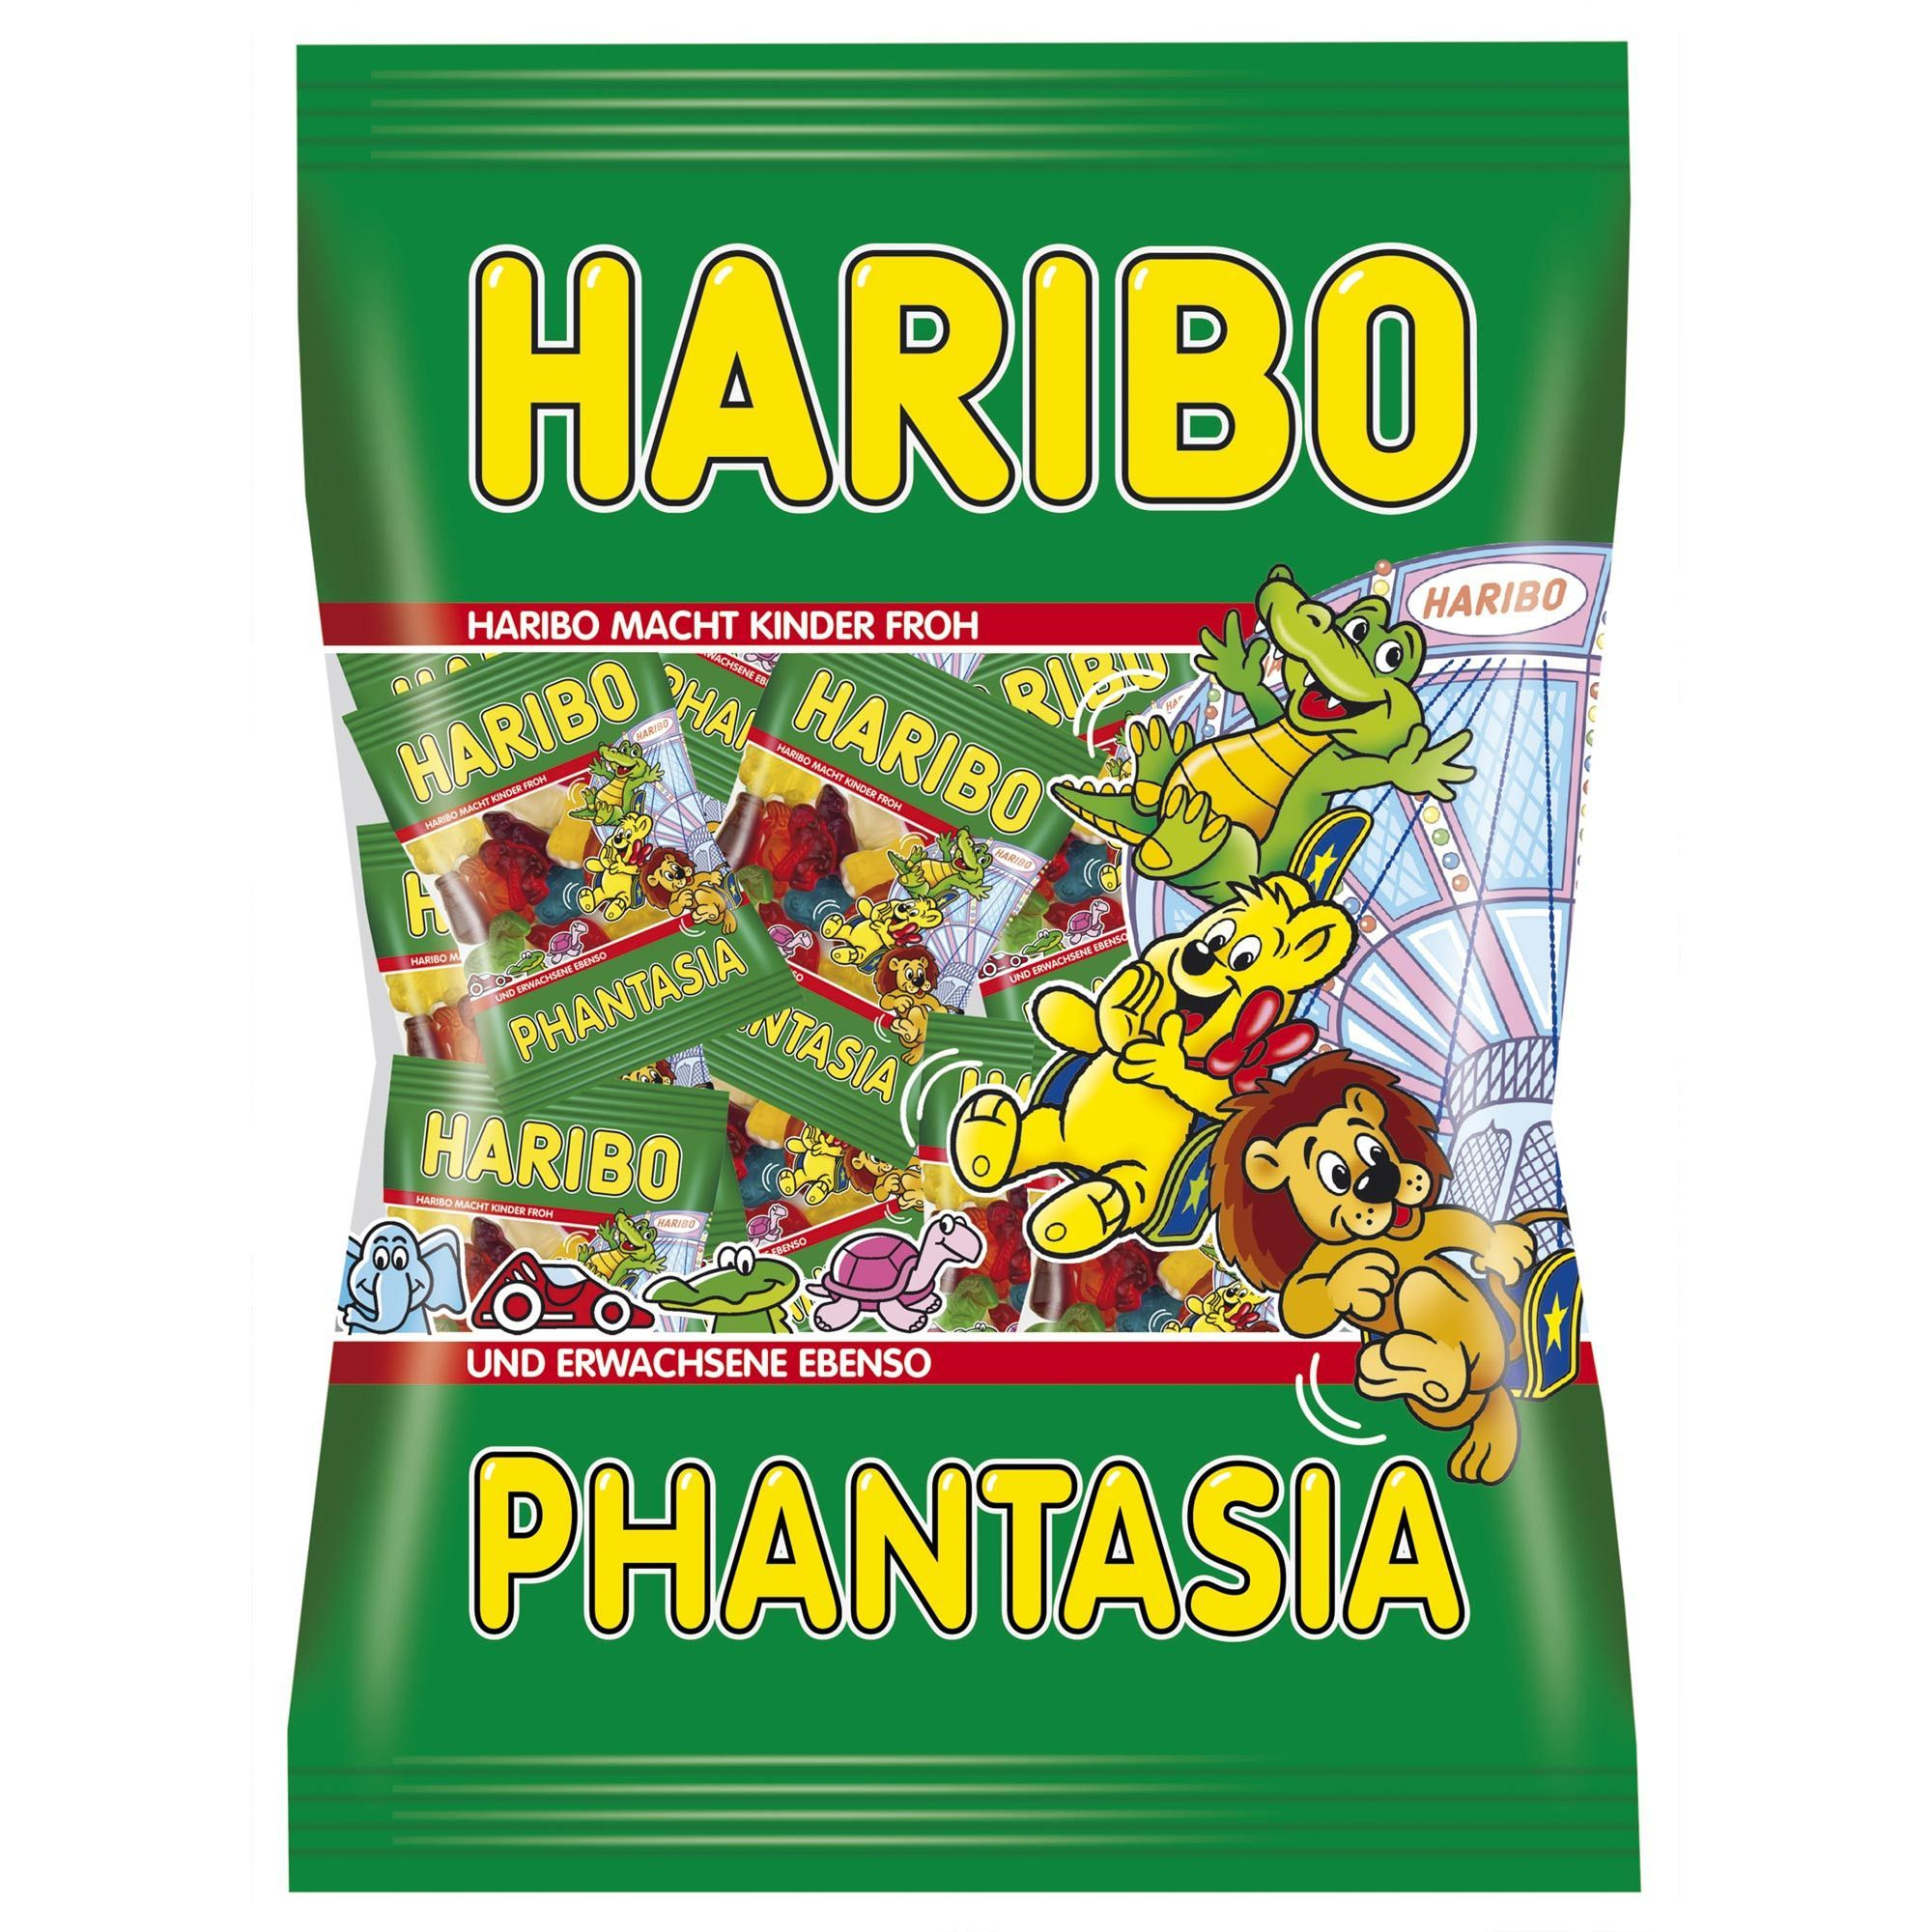 Haribo gummy bears are just one of many products that thomas -  In Usa Haribo Phantasia Mini Bags Gummy Bears